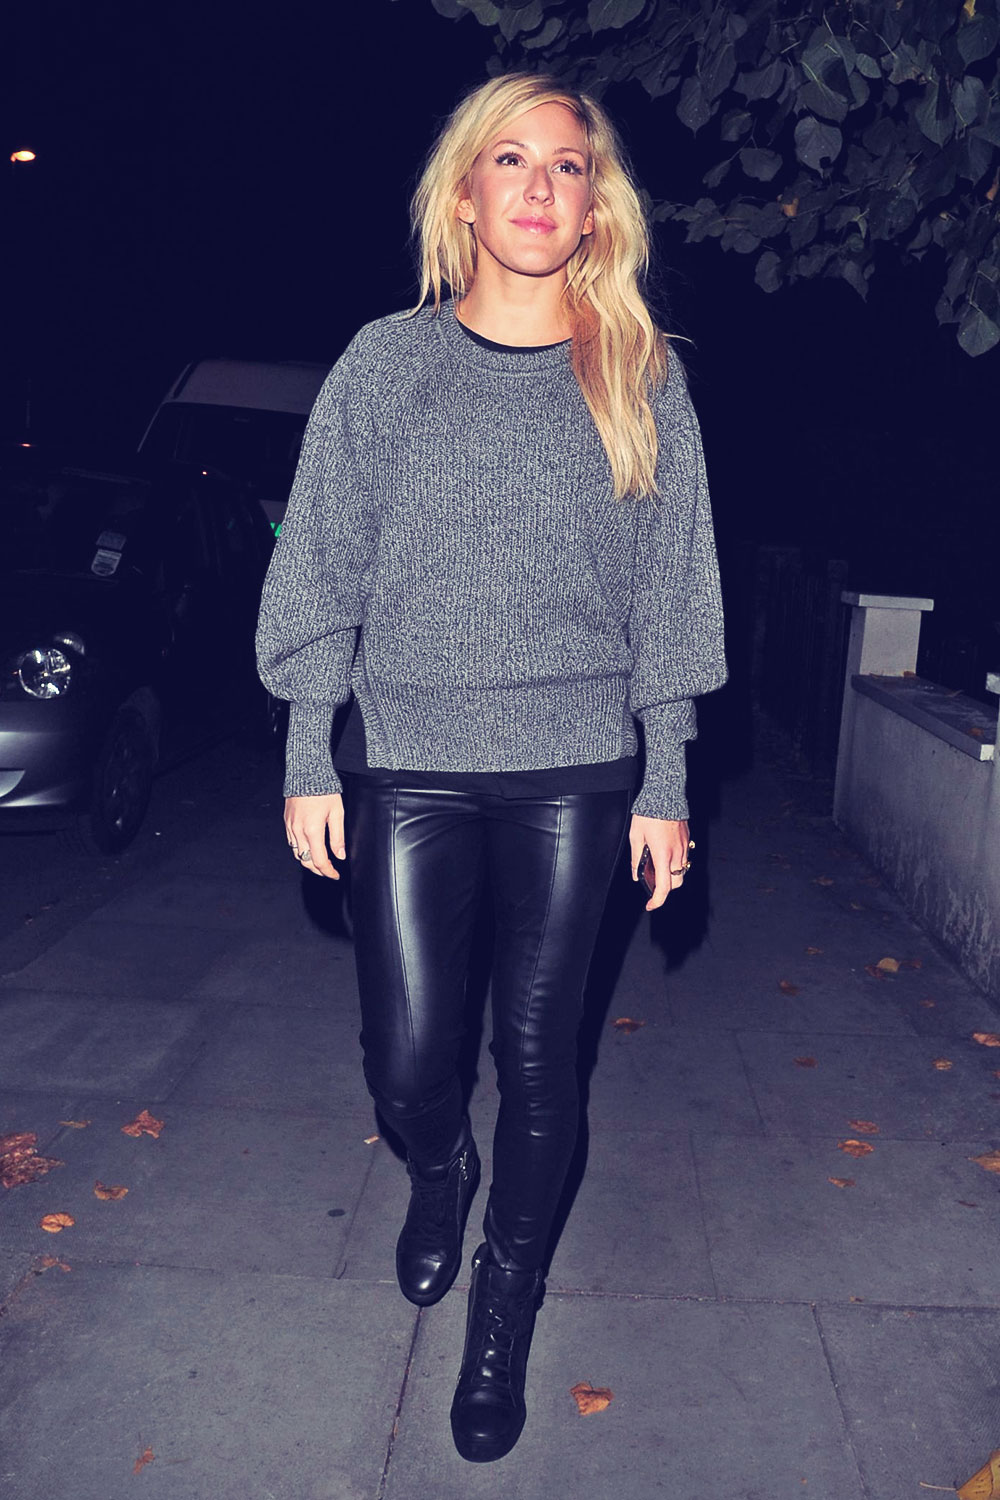 Ellie Goulding leaving a pub in London